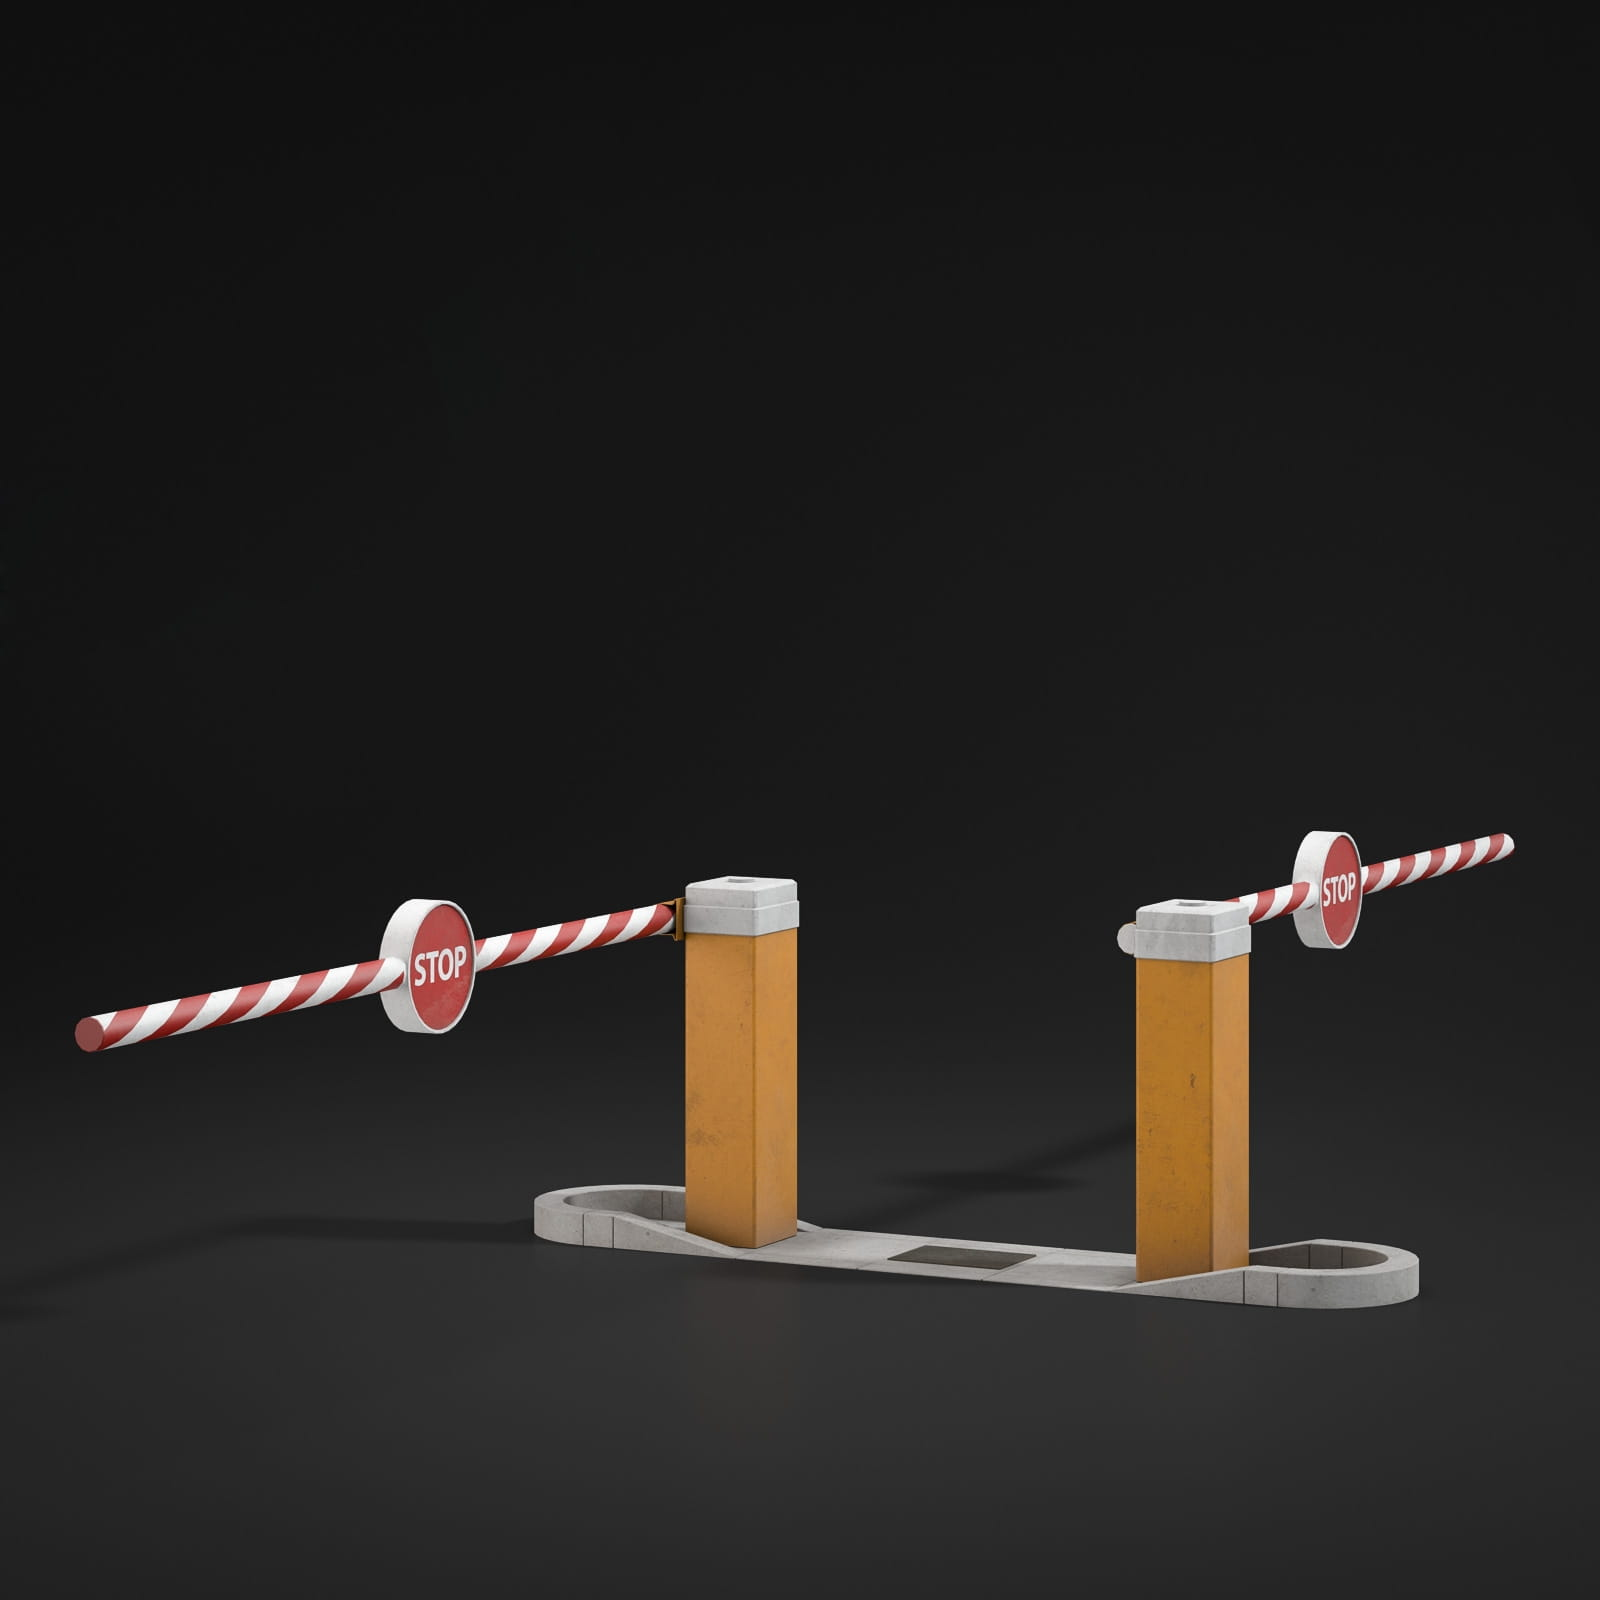 boom barriers 64 AM211 Archmodels